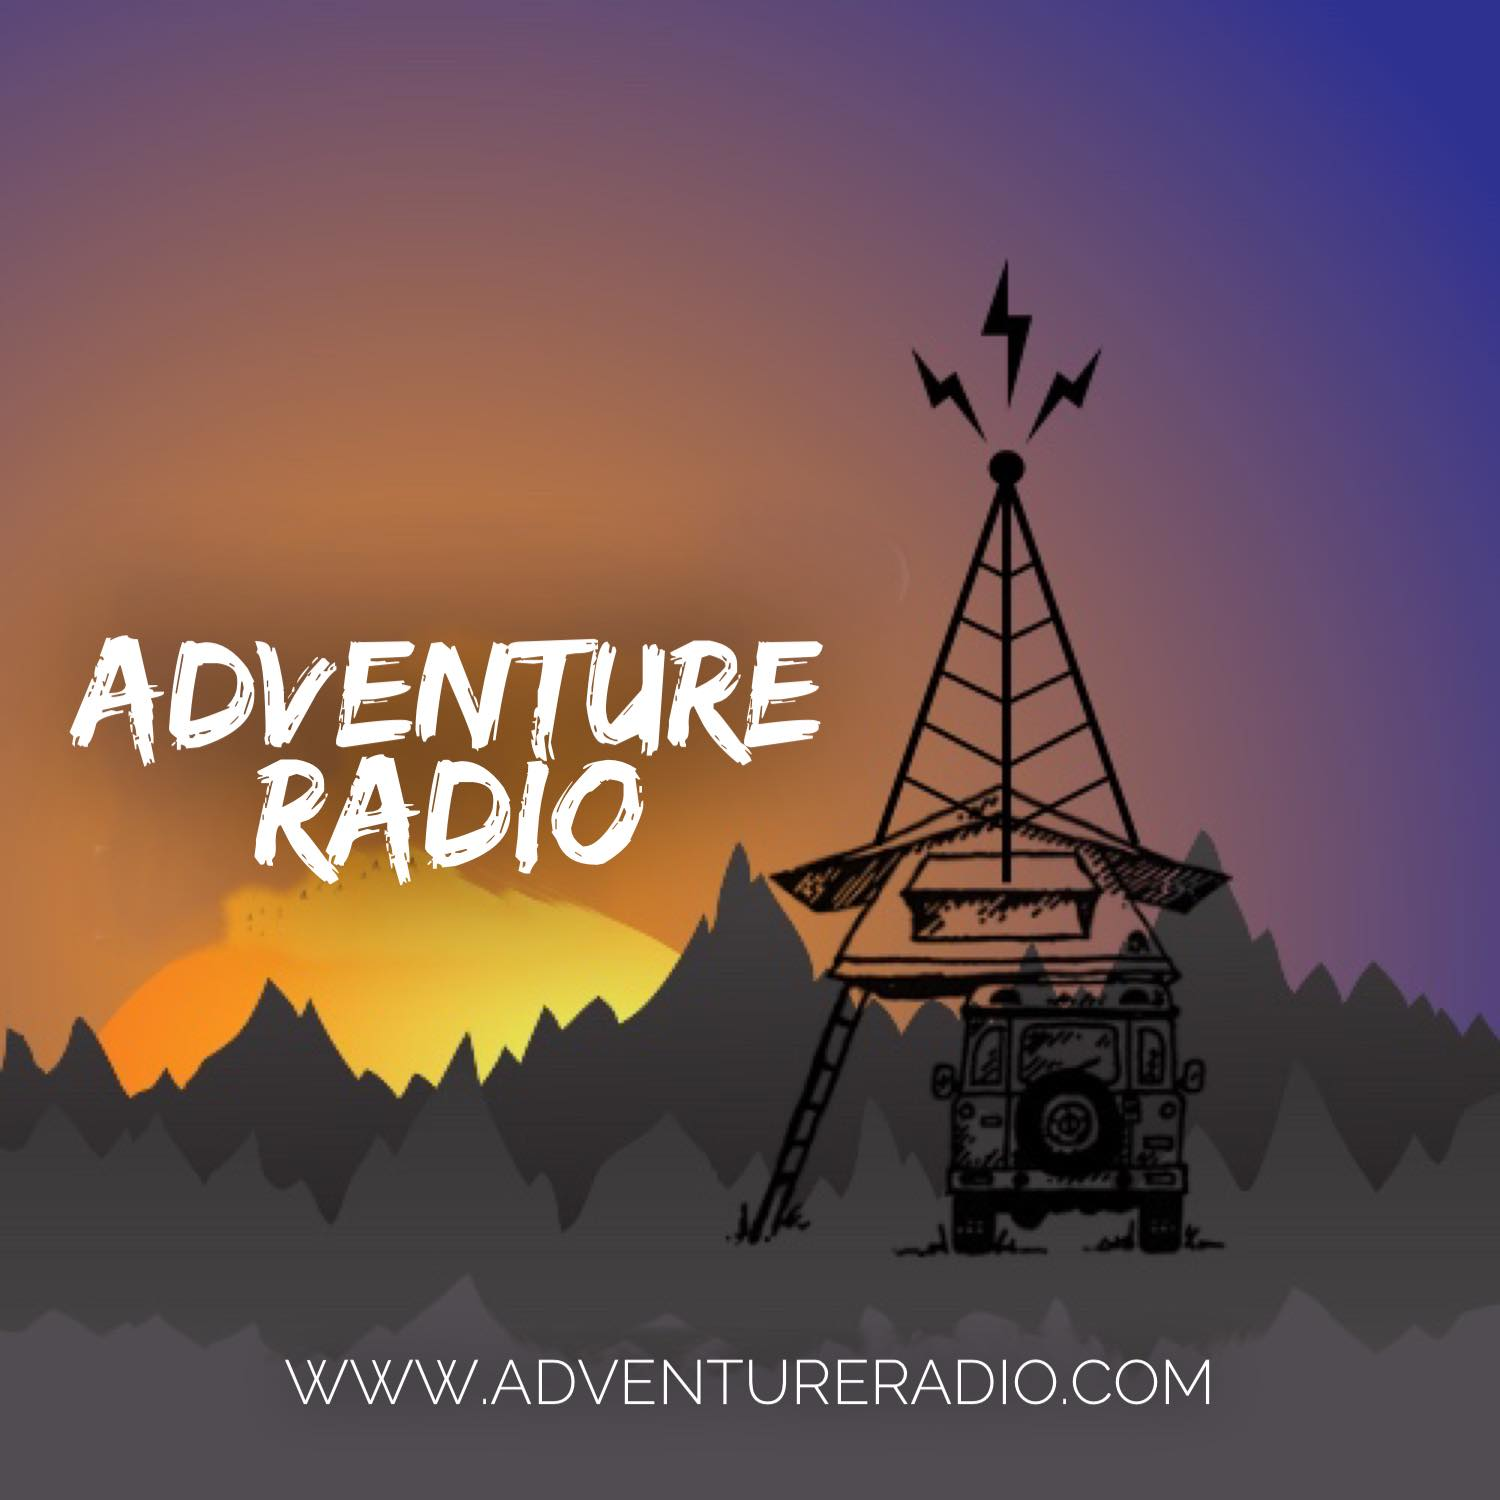 Art for 4x4 podcast 1 by Adventure Radio